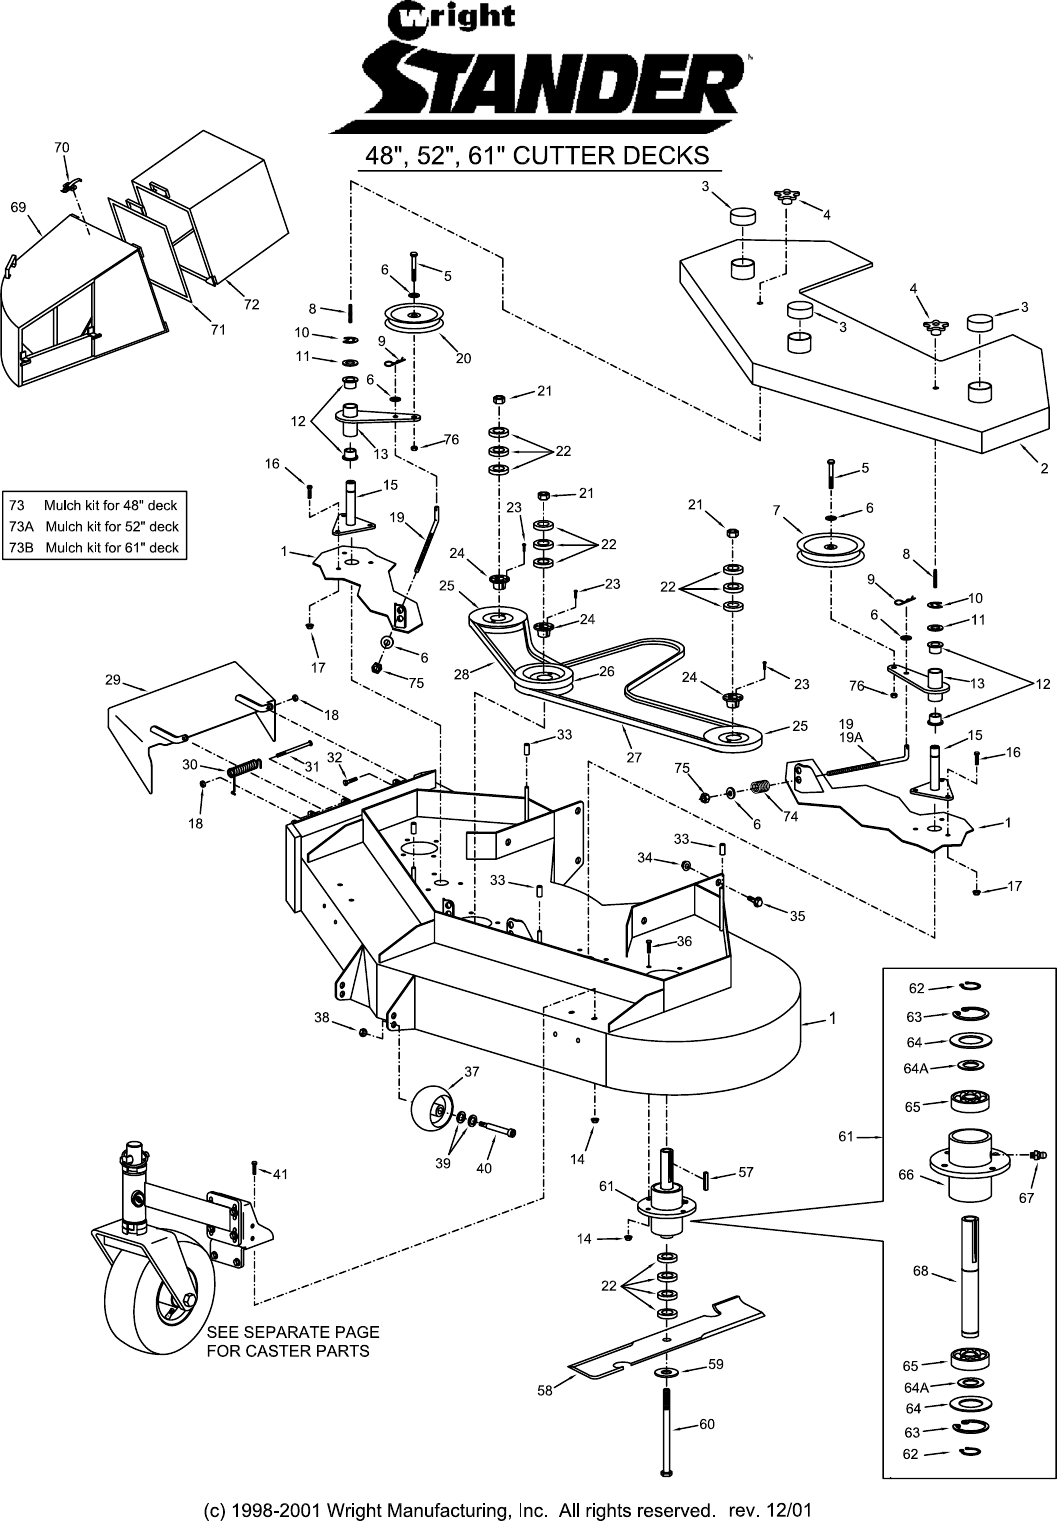 Drive belt 3 user manual array page 3 of wright manufacturing lawn mower 61 user guide rh lawnandgarden manualsonline com fandeluxe Choice Image